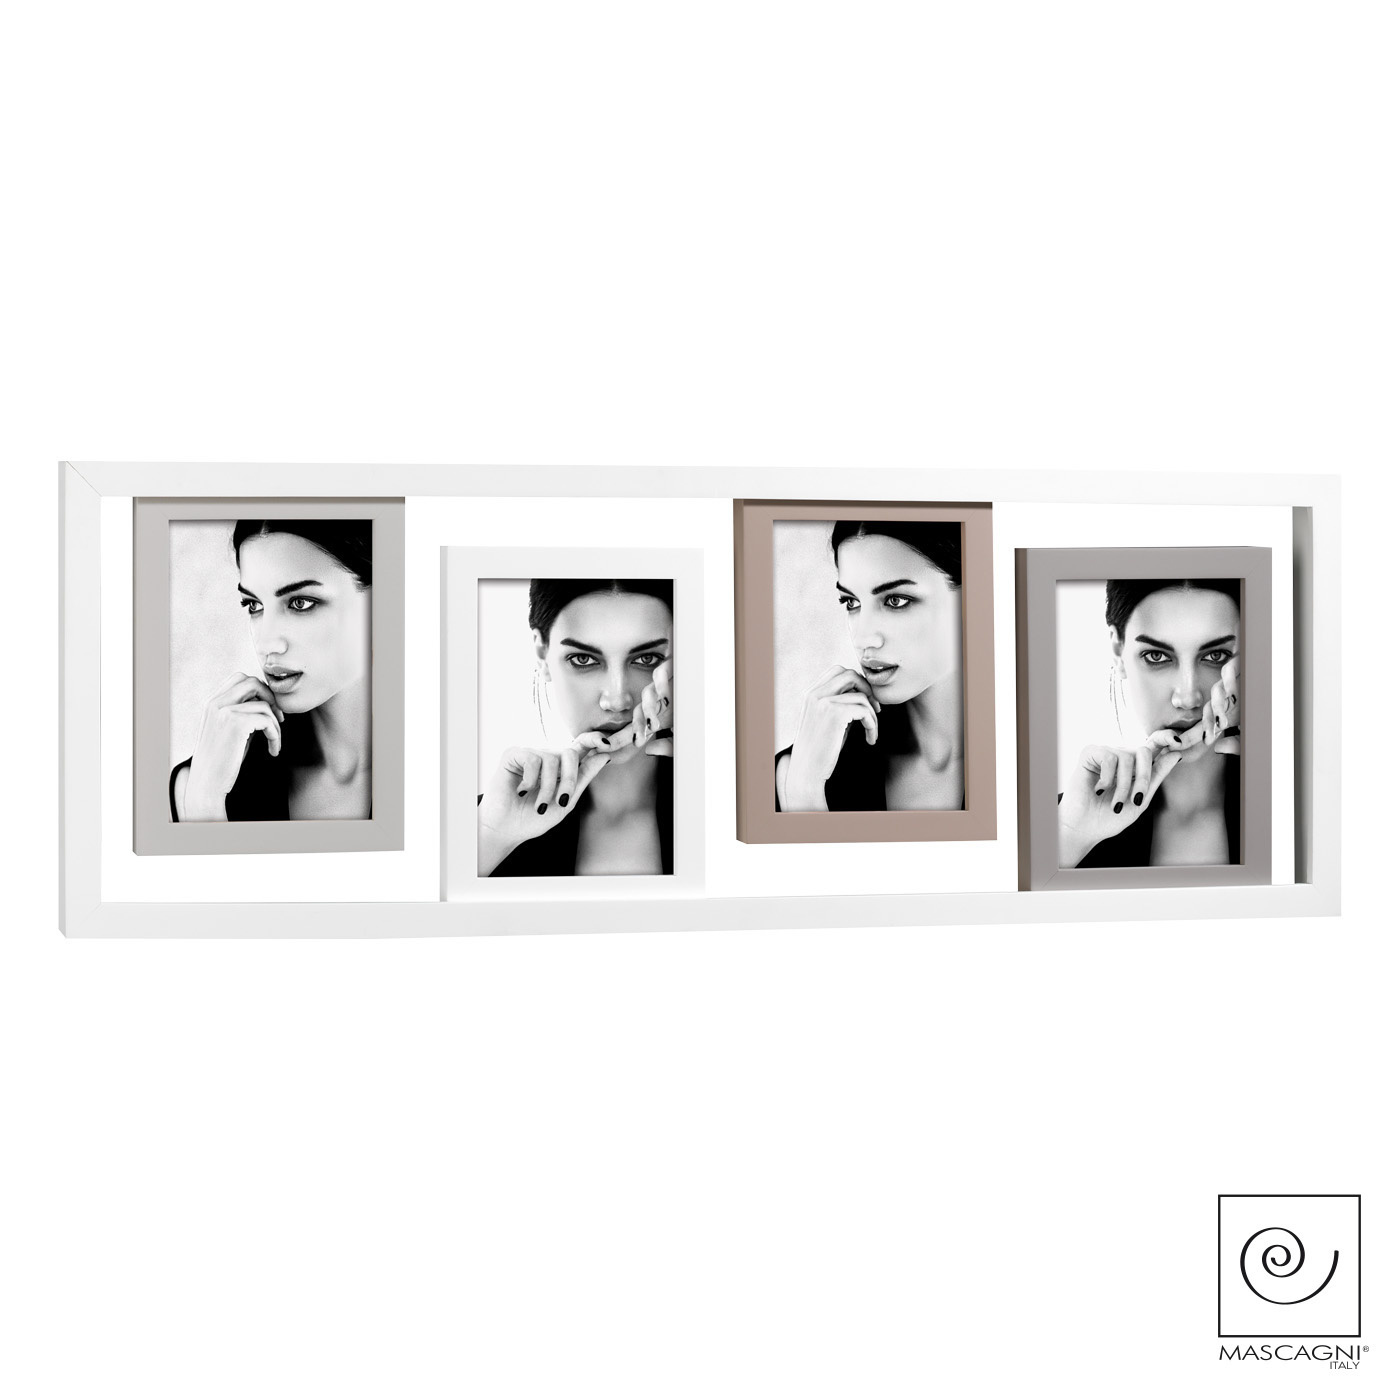 Art Mascagni A972 MULTIPLE FRAME